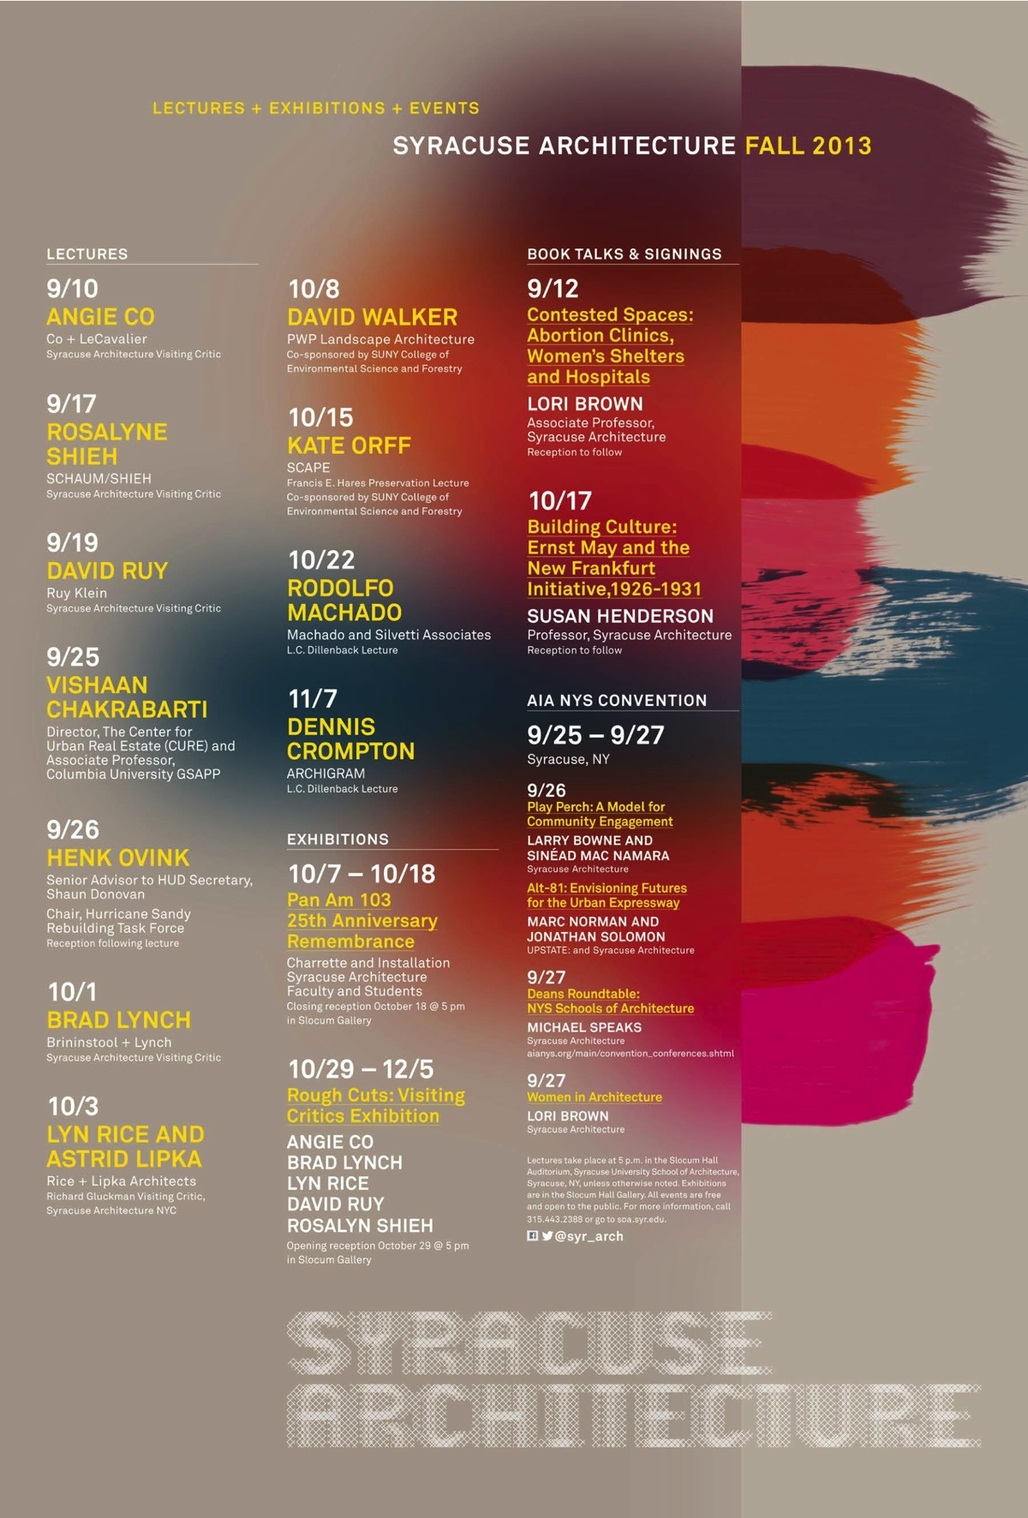 Poster for Fall 13 lecture events at Syracuse University School of Architecture. Design by Alexa Mulvihill. Image courtesy of Syracuse University.